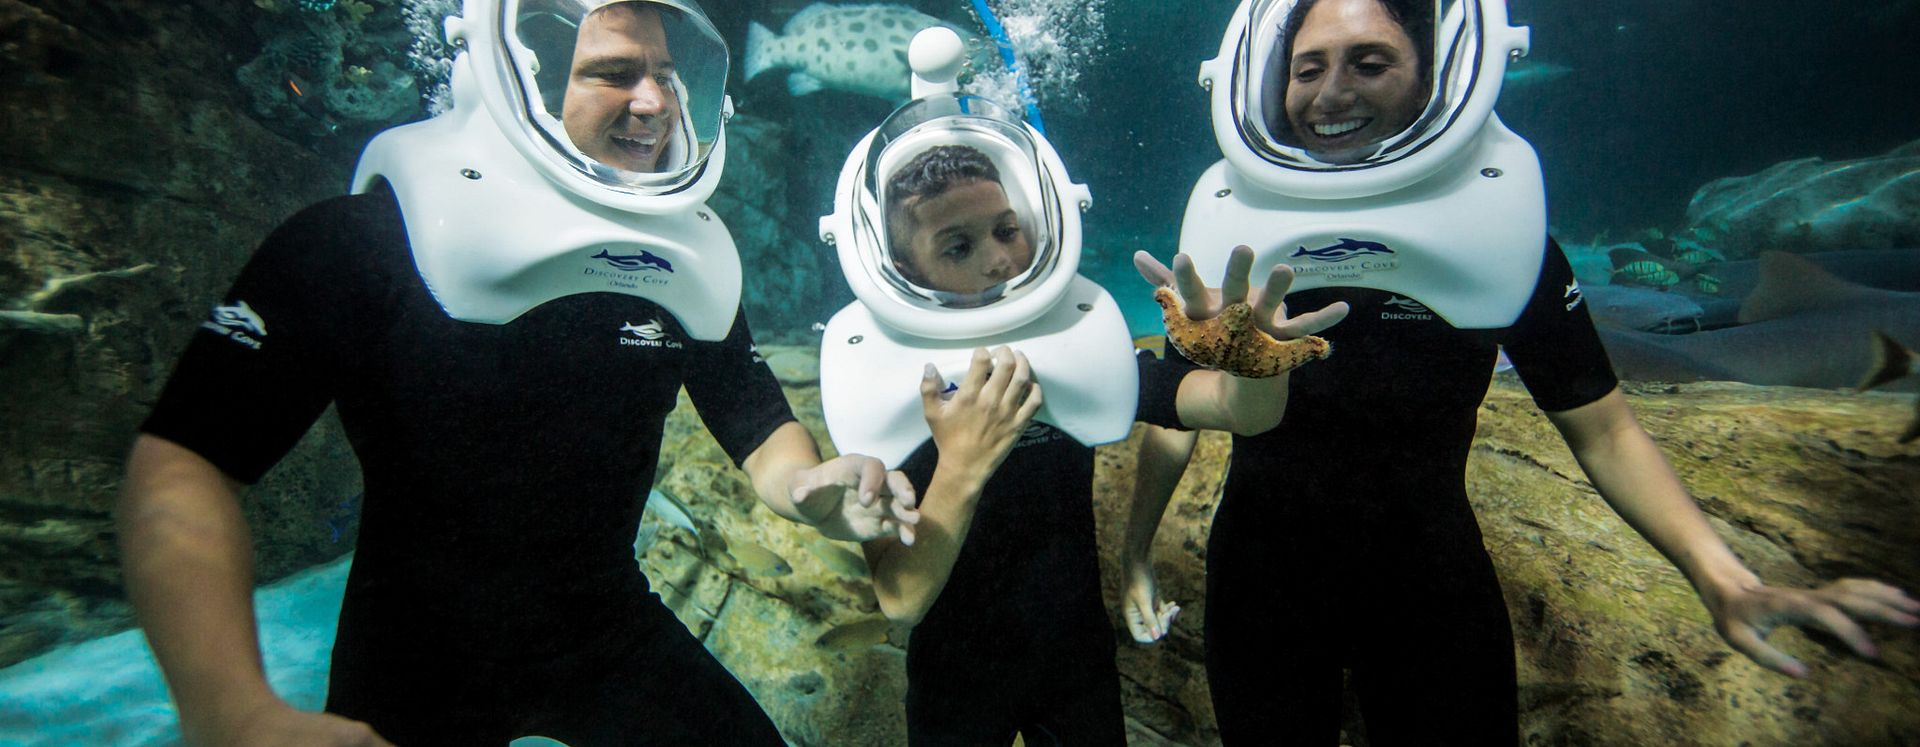 Family underwater with a oxygen mask helmet on in Disovery Cove, Orlando